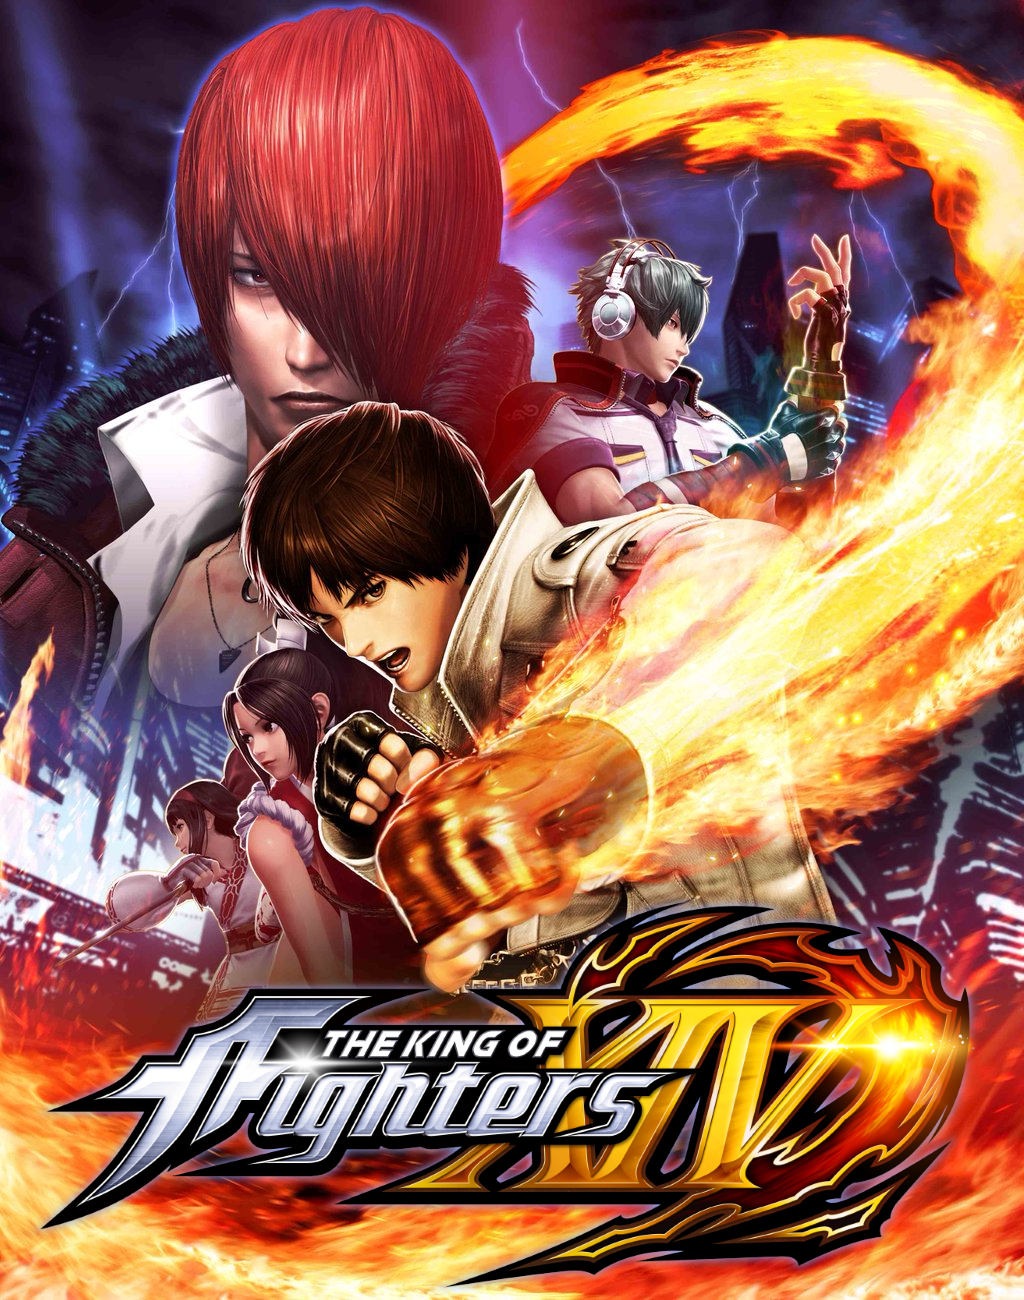 The King Of Fighters Xiv Snk Wiki Fandom